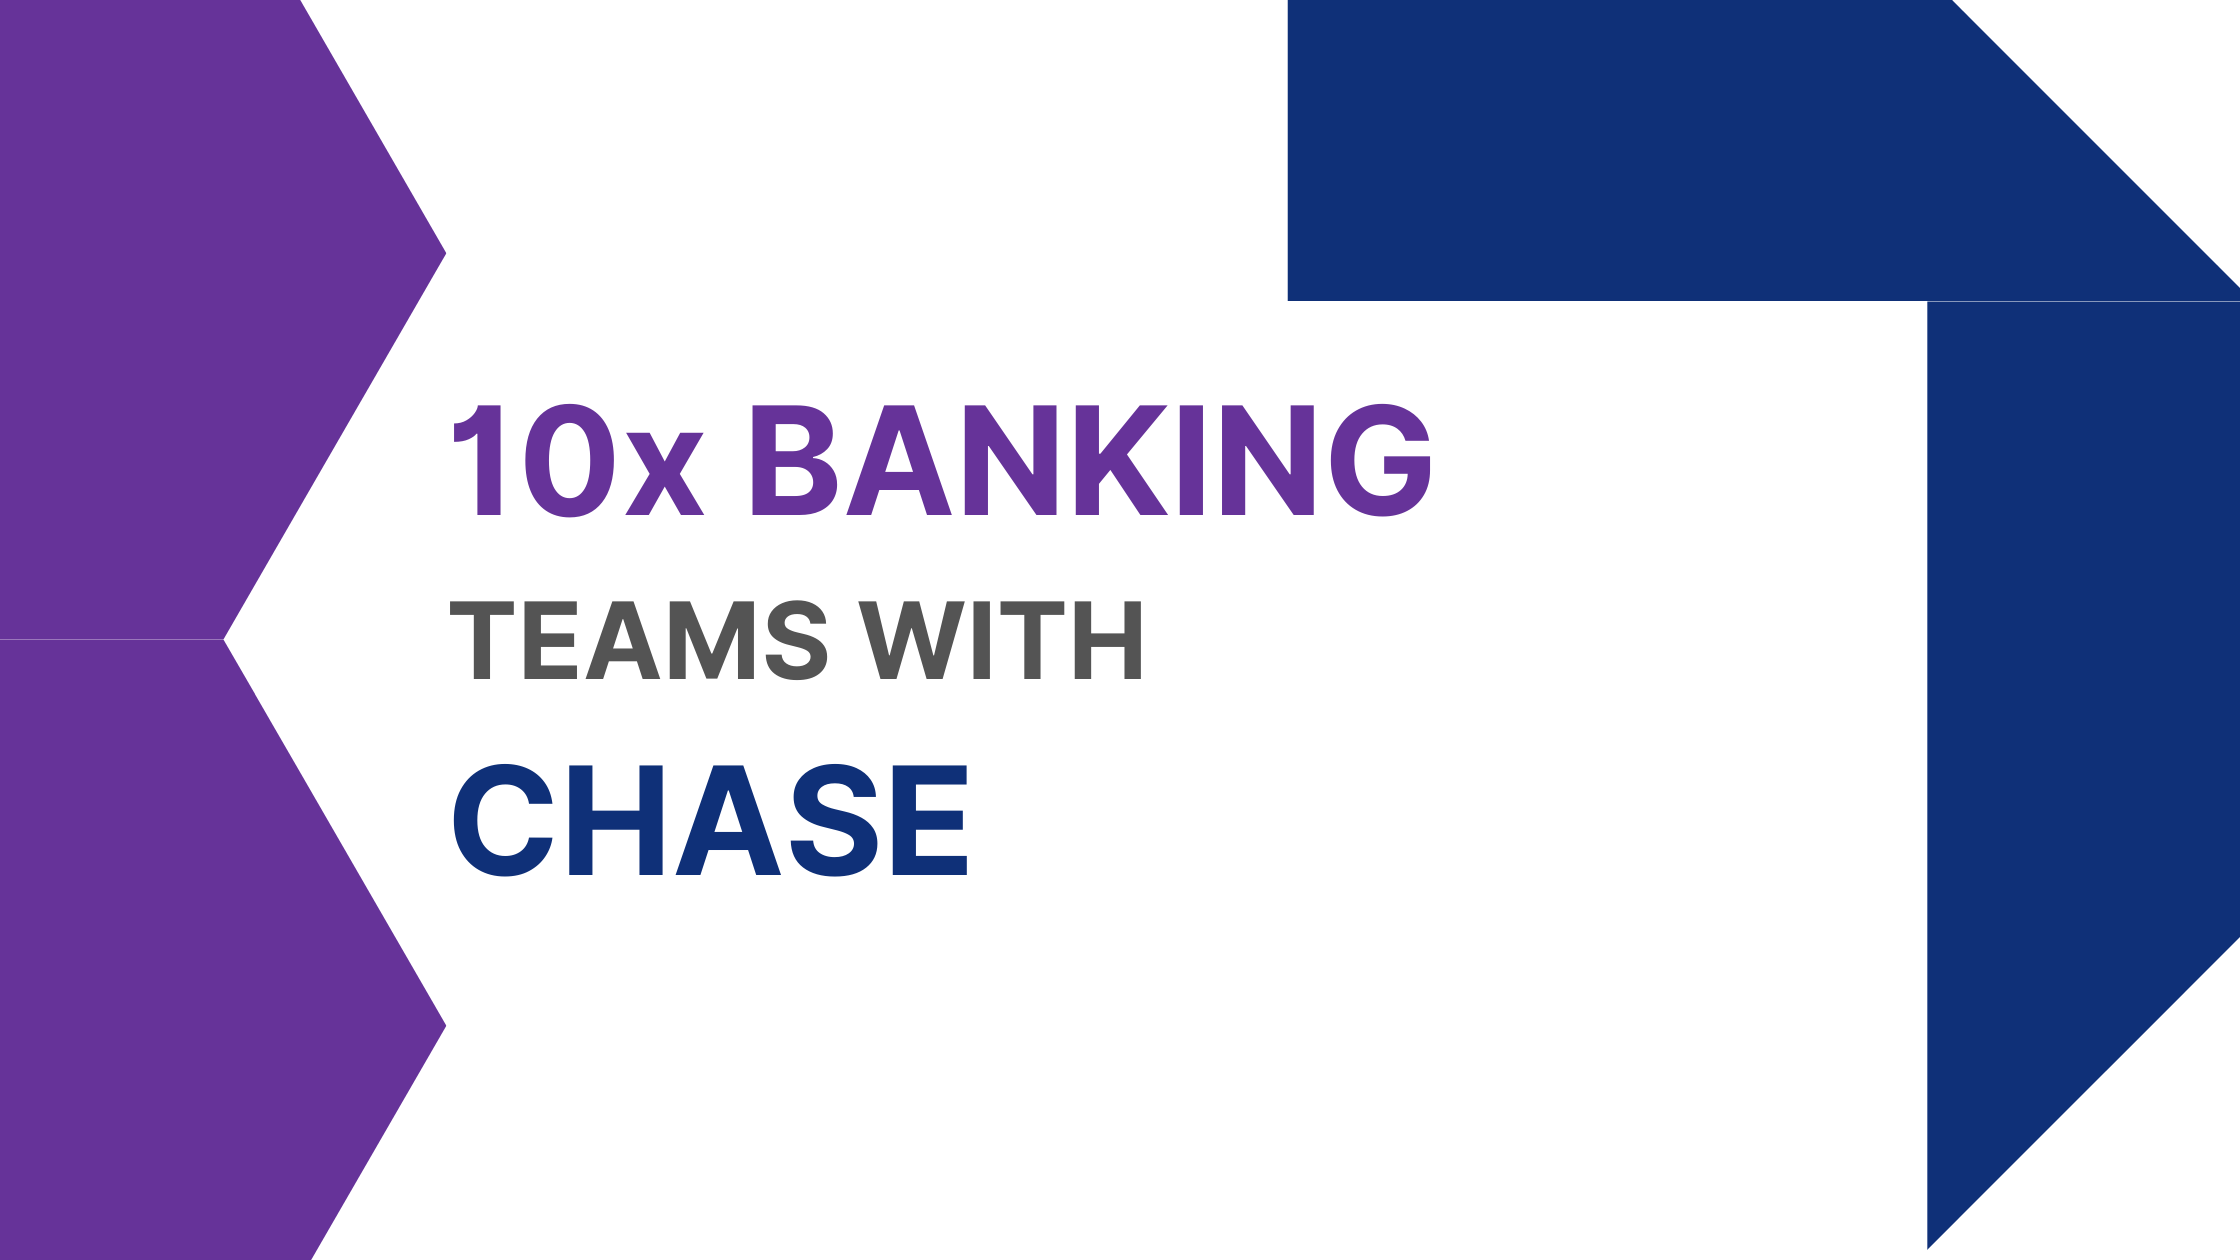 10x Banking teams with Chase